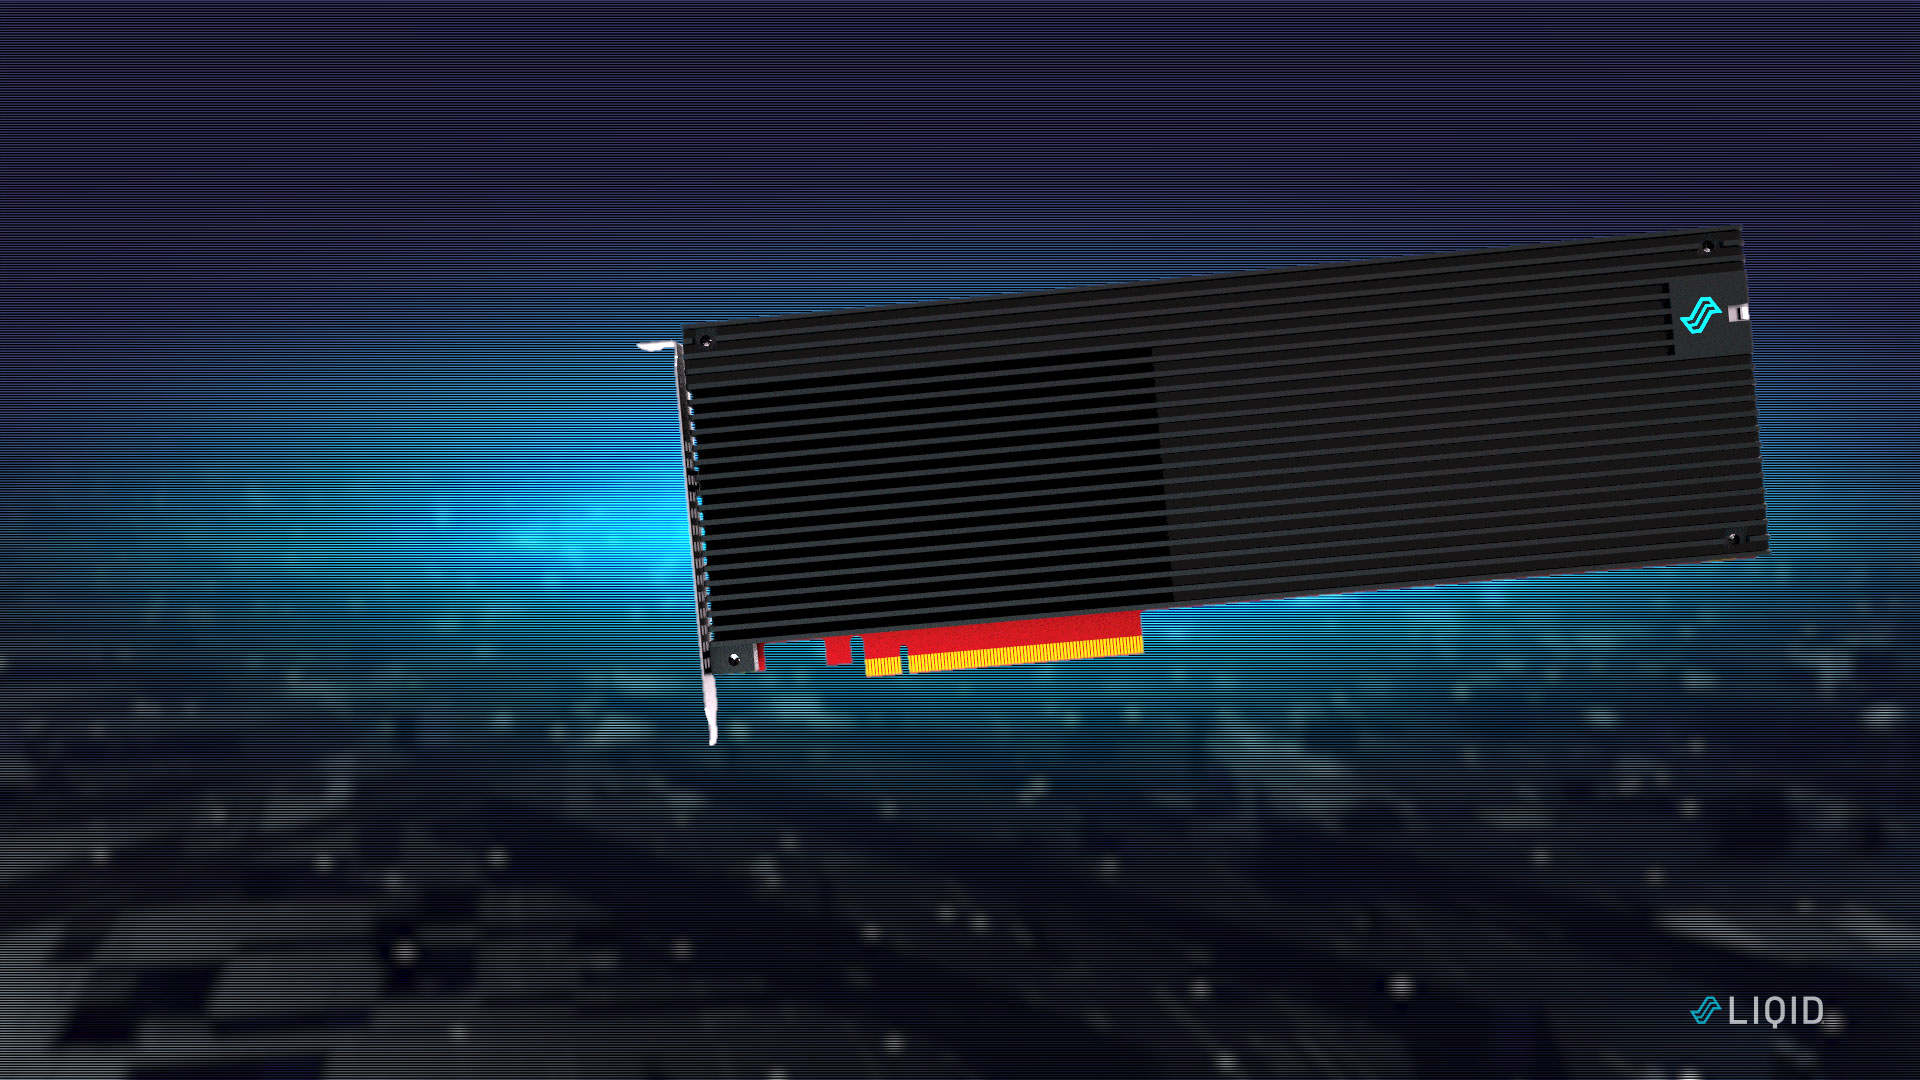 Liqid Element LQD4500 PCIe AIC Honey Badger